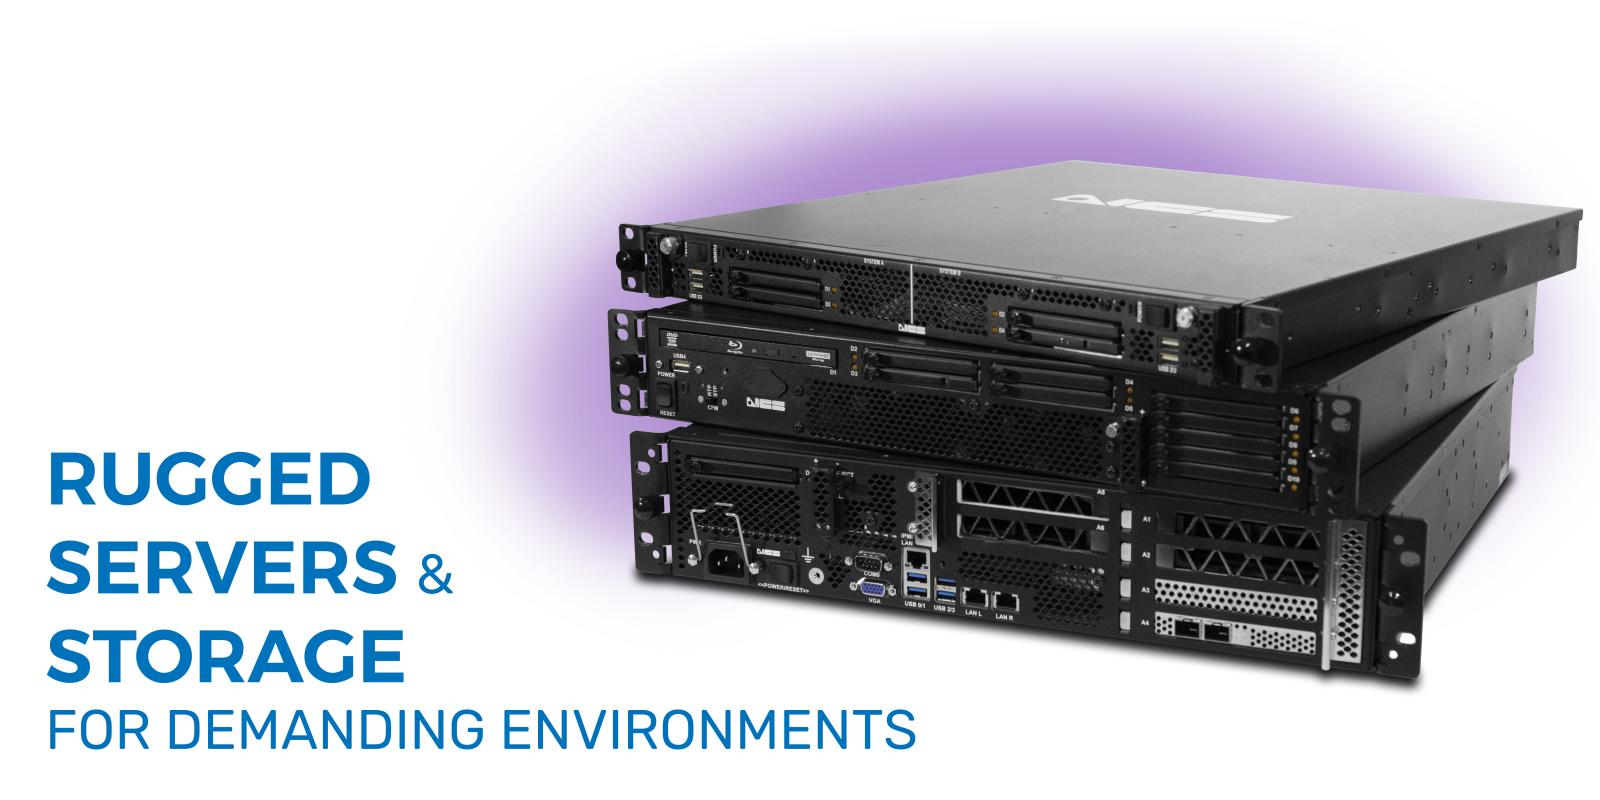 Rugged Servers & Storage for Demanding Environments